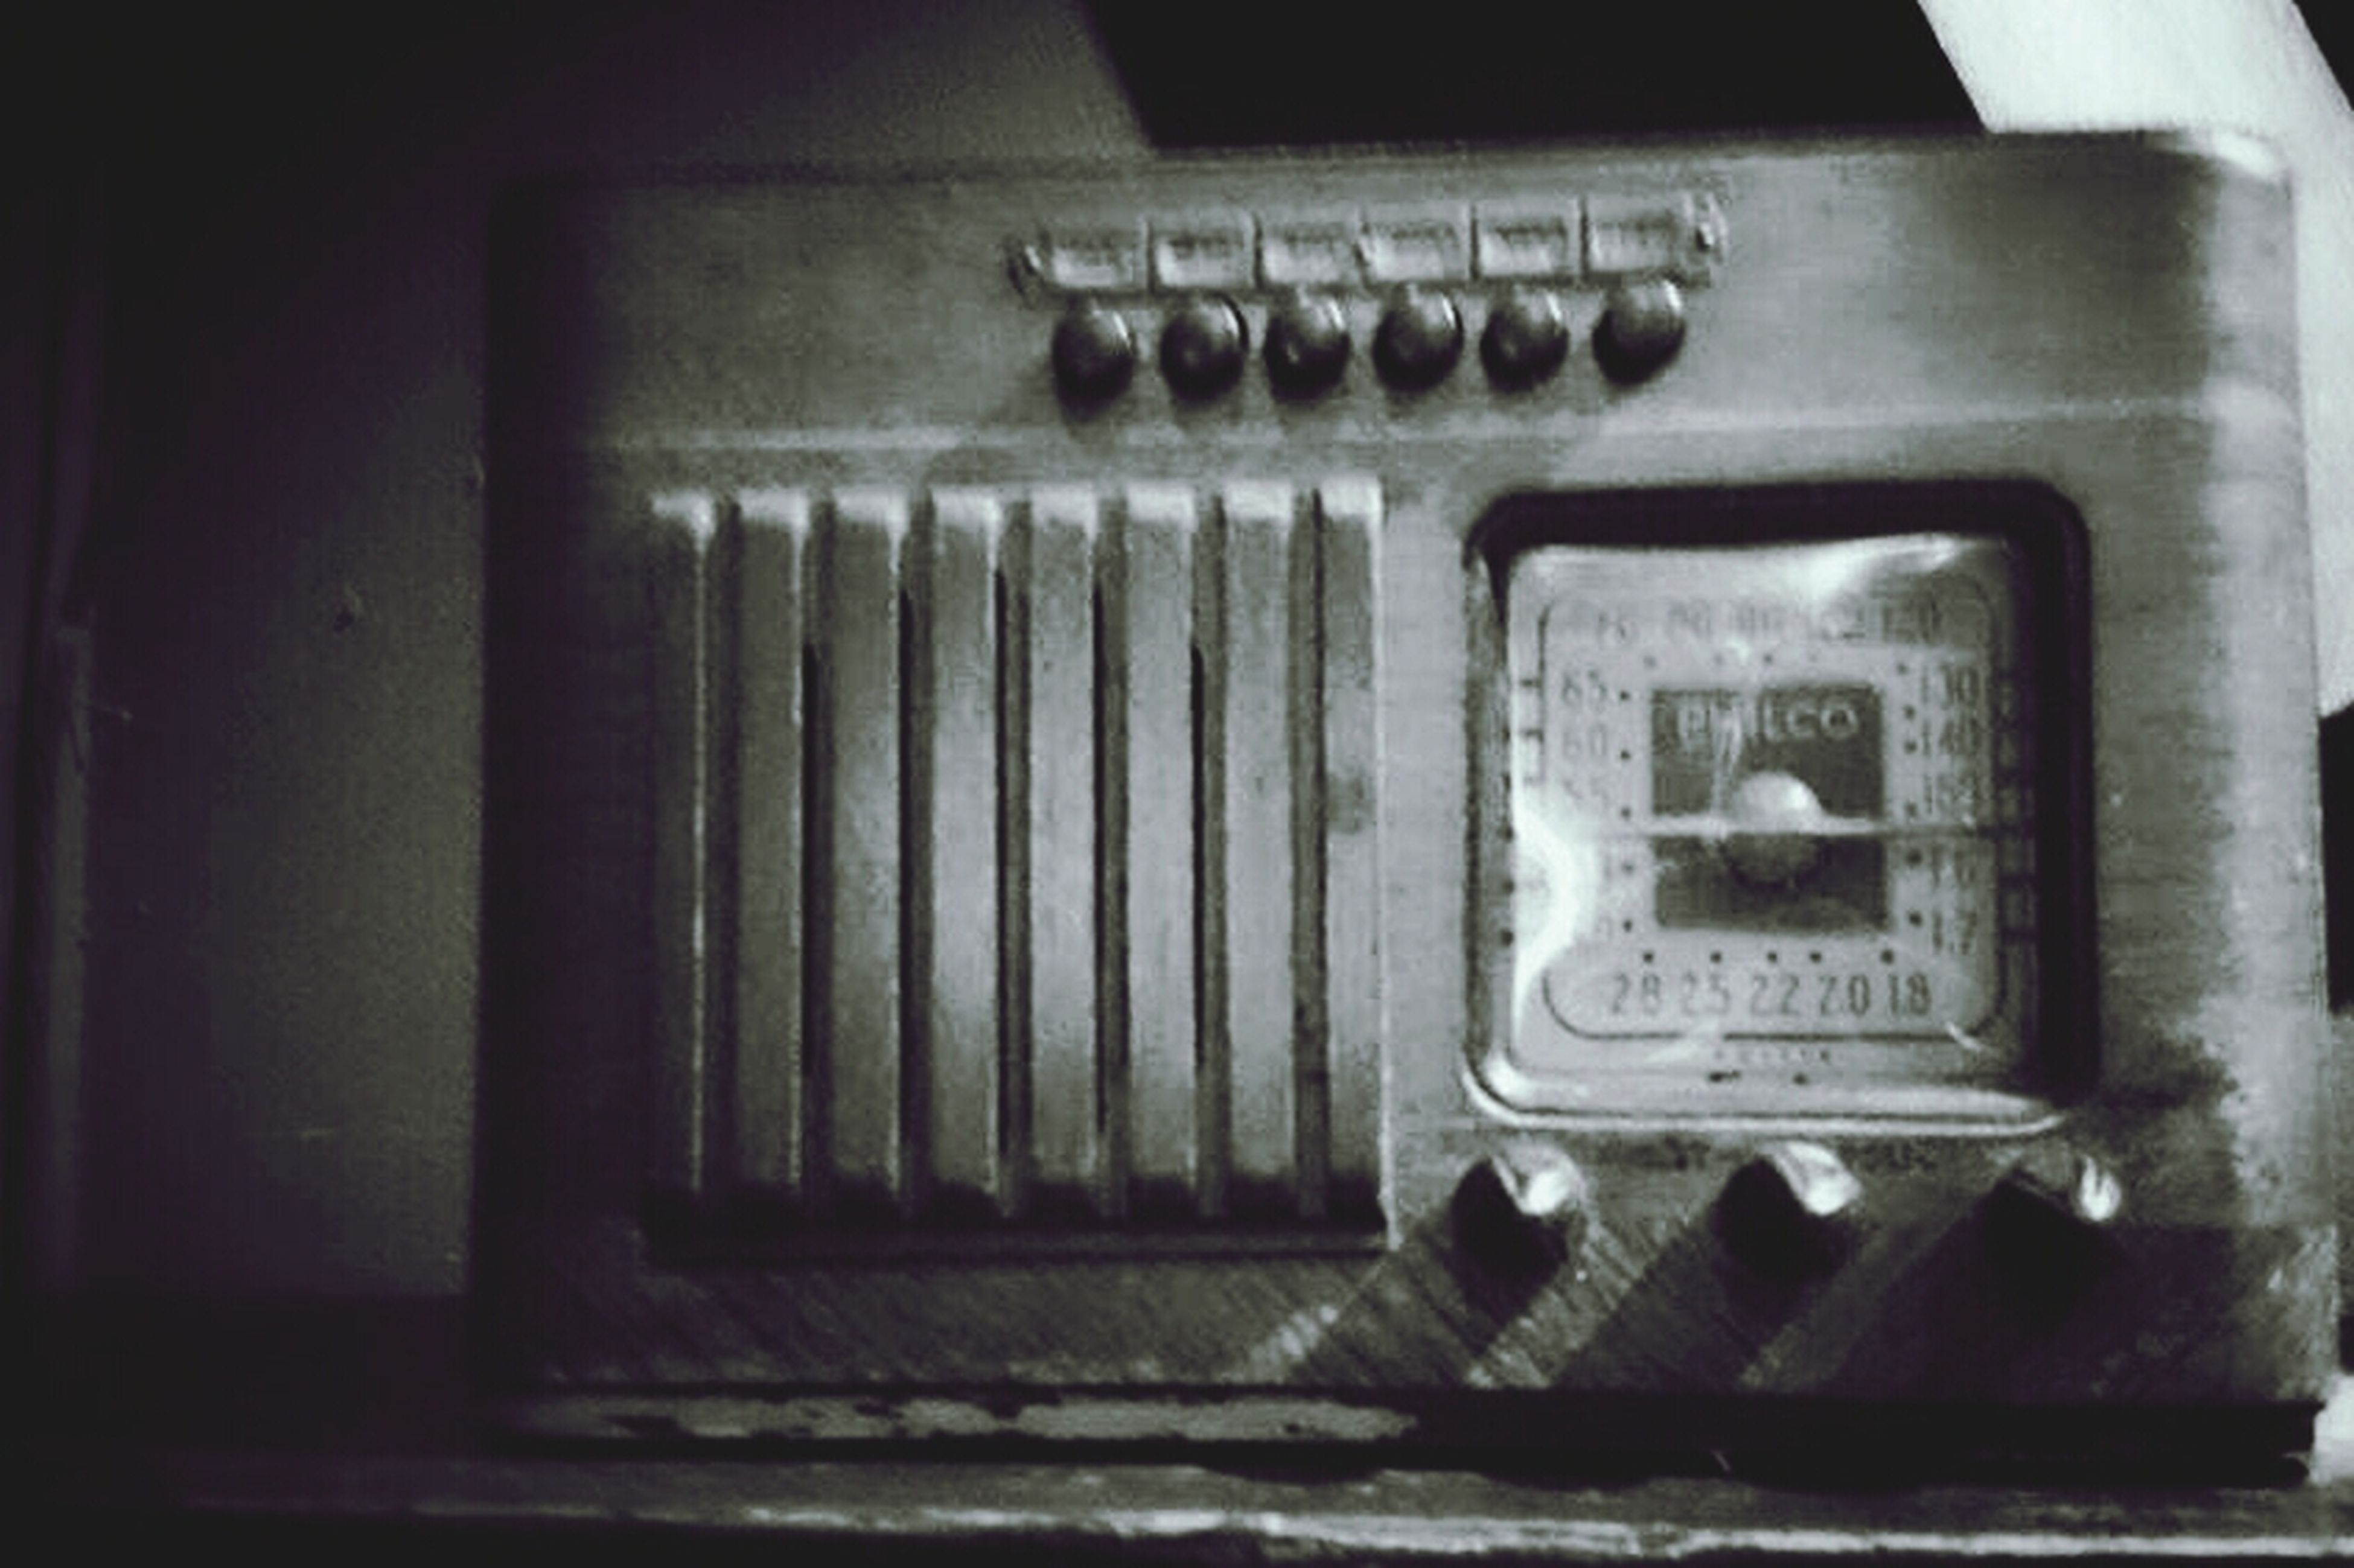 indoors, communication, old, old-fashioned, technology, metal, close-up, text, retro styled, door, number, wall - building feature, telephone, western script, connection, no people, metallic, obsolete, electricity, closed